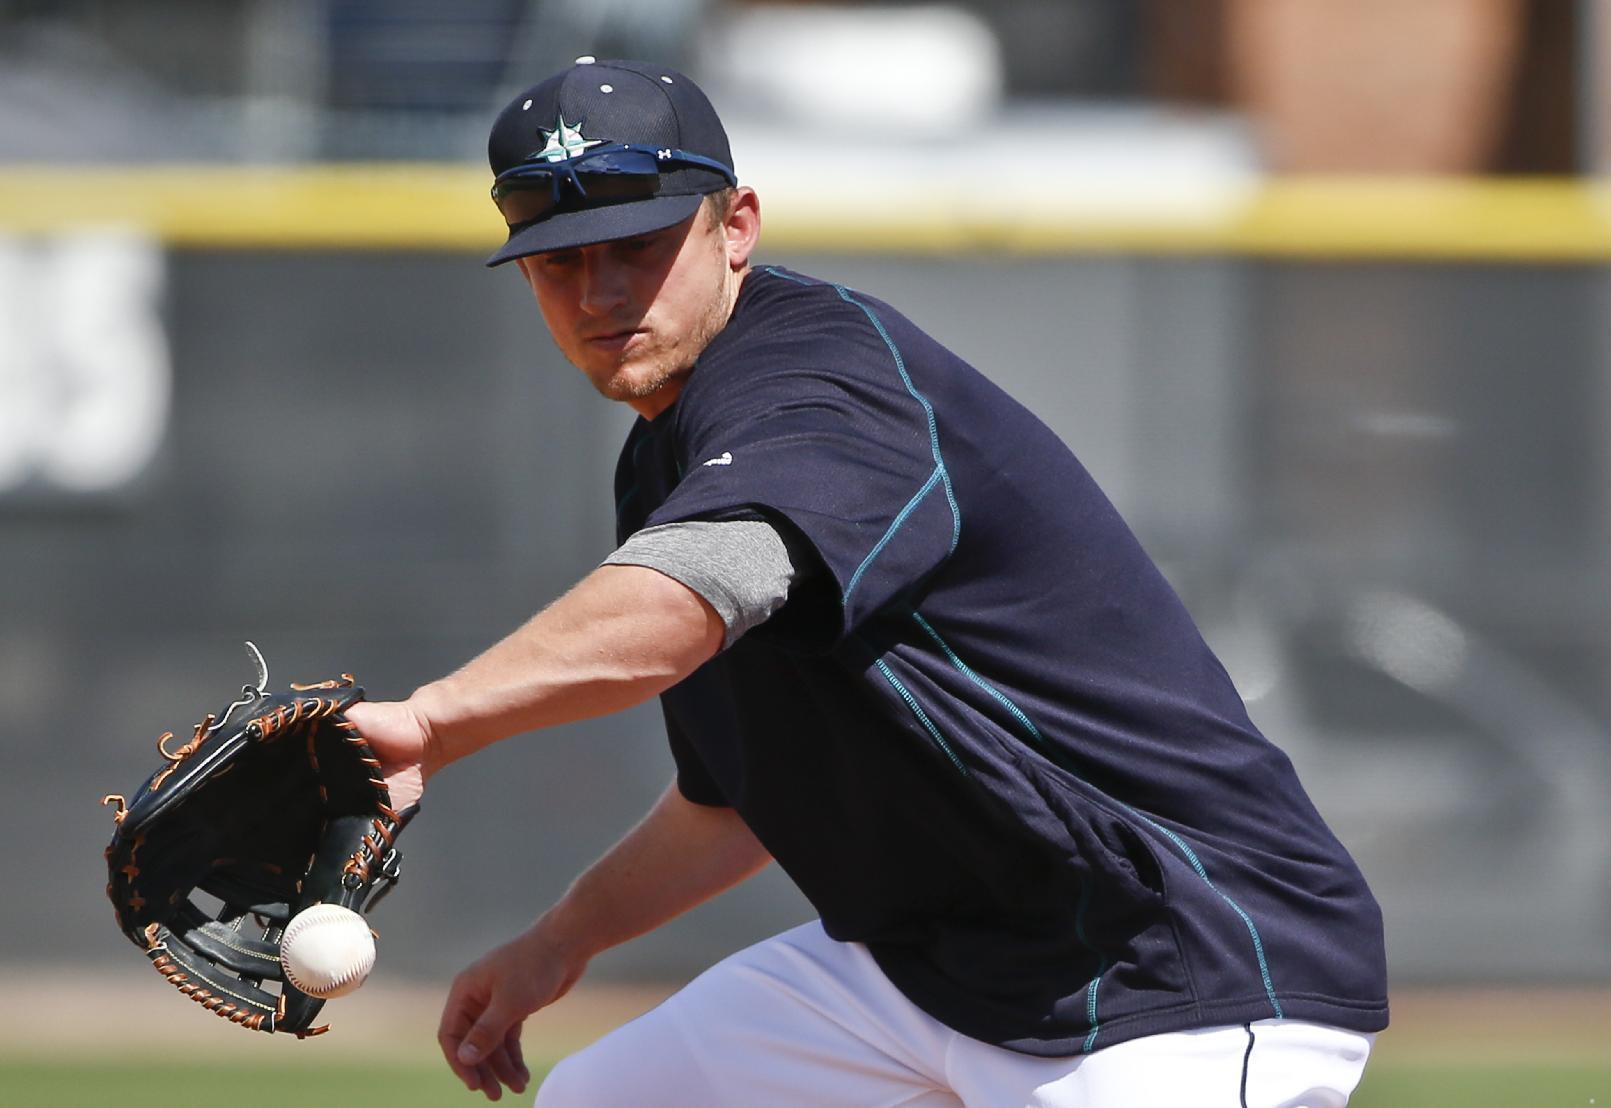 Hernandez throws 6 sharp innings in Mariners' loss to Royals